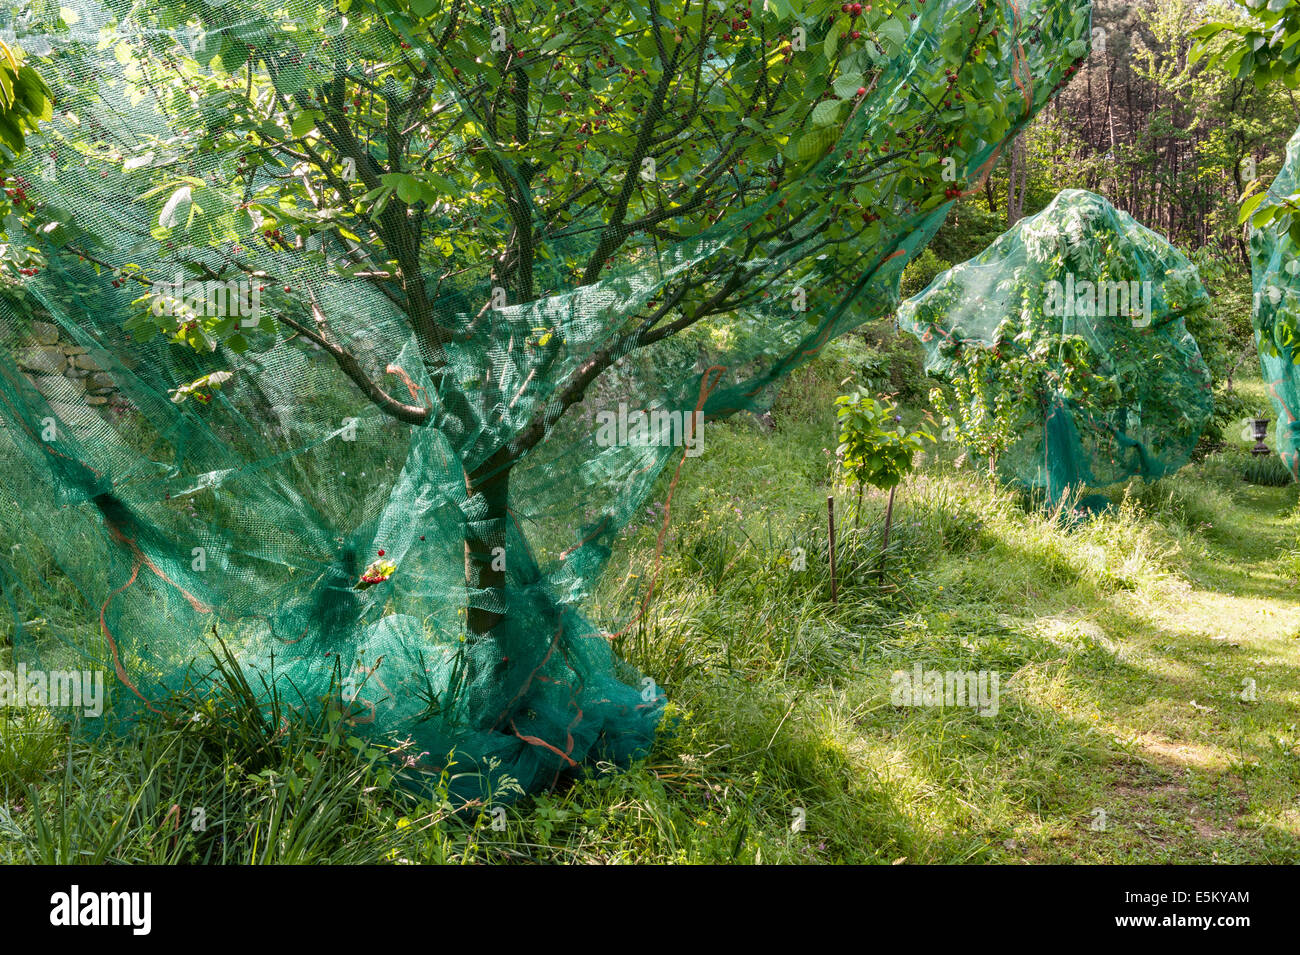 Ripe cherries netted to protect them from birds in an Italian orchard - Stock Image